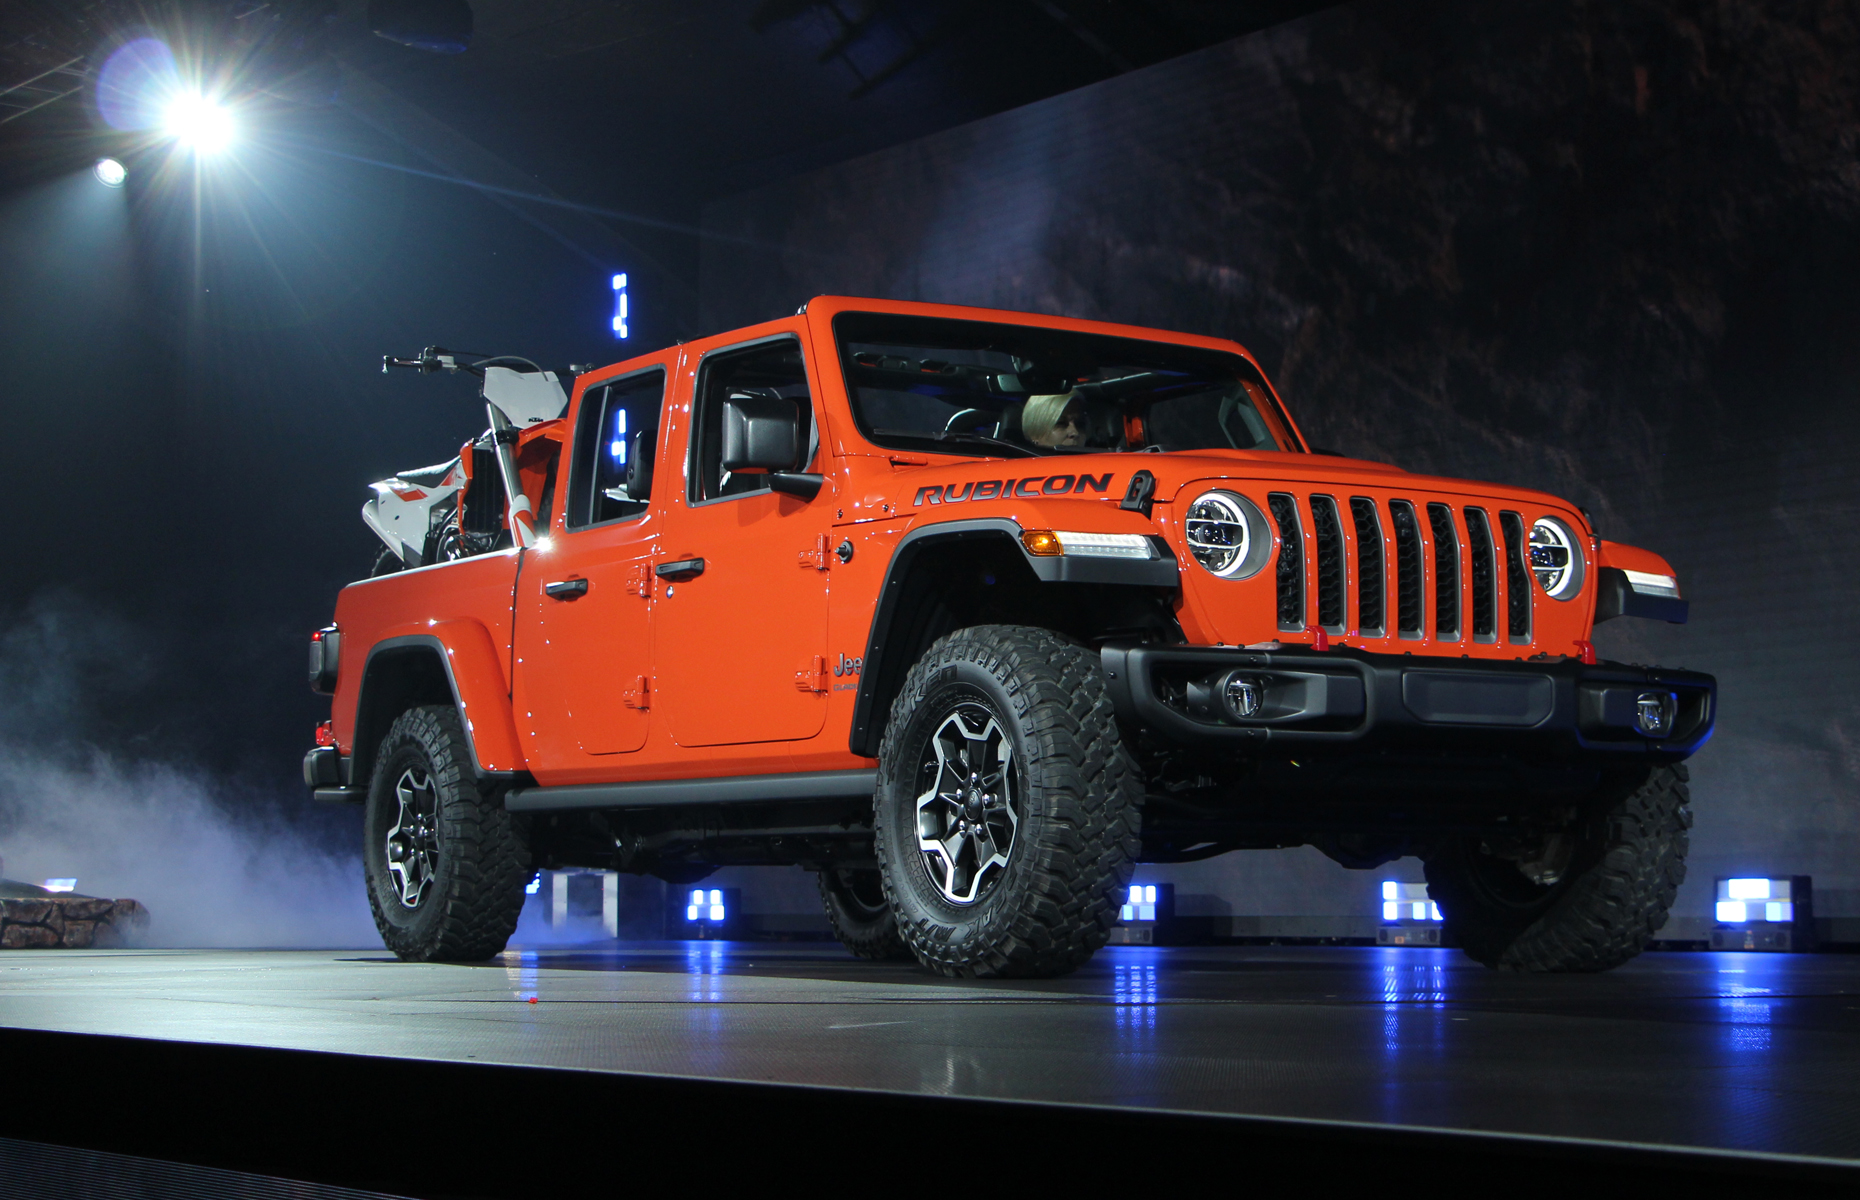 45 All New When Can You Buy A 2020 Jeep Gladiator Pictures for When Can You Buy A 2020 Jeep Gladiator